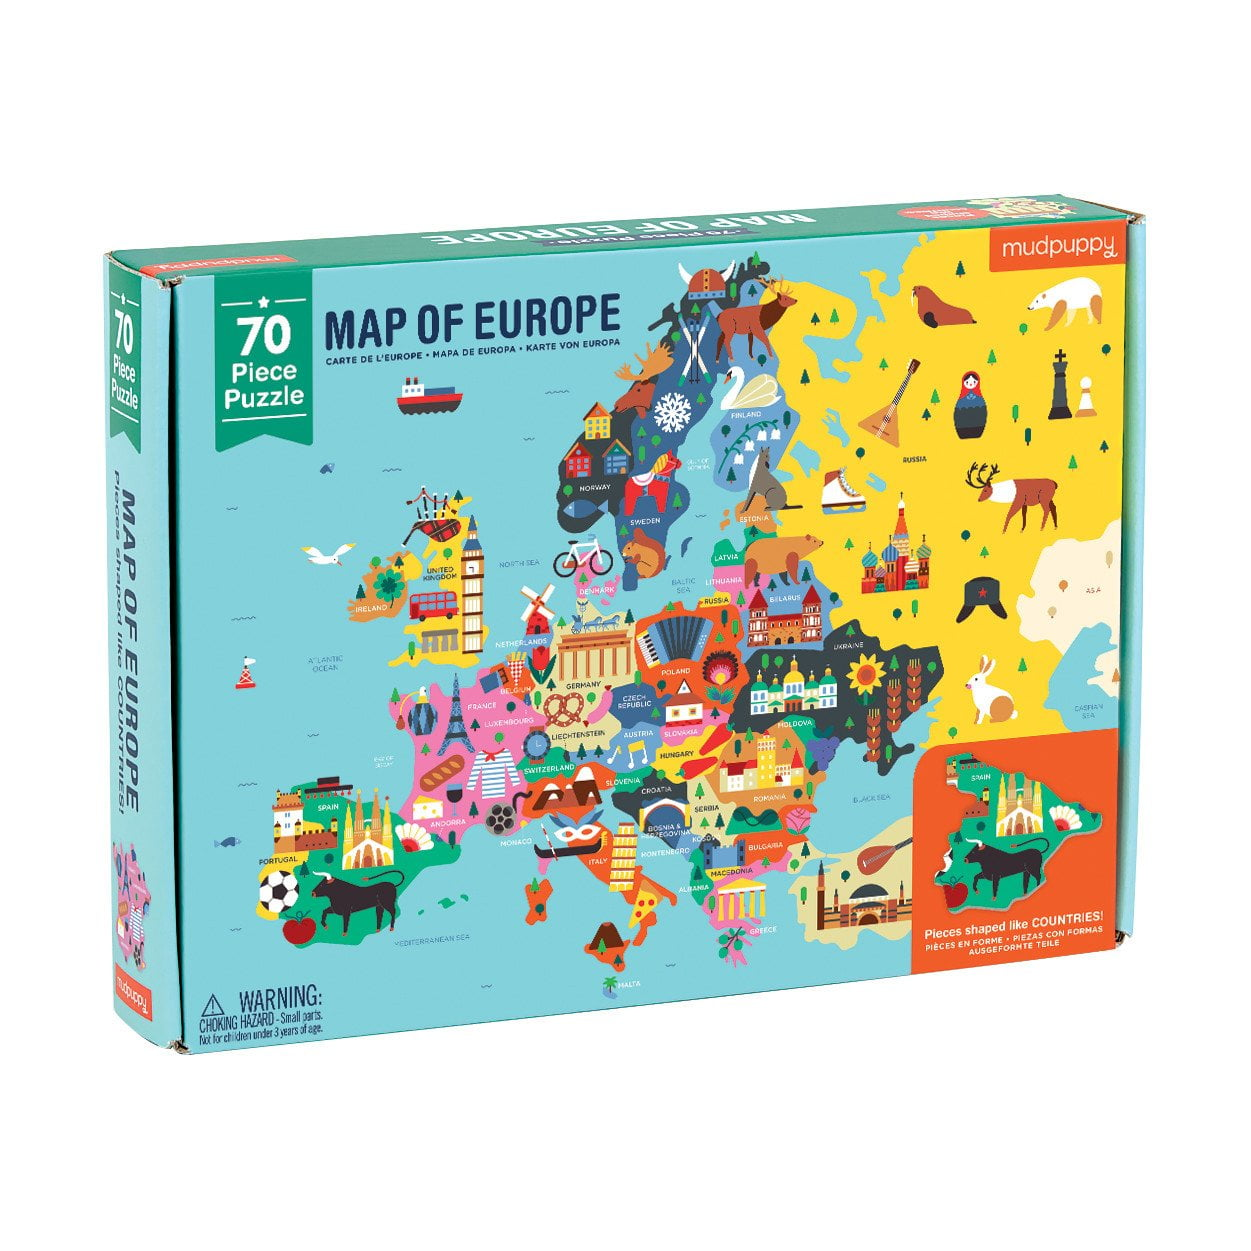 Map Of Europe 70 Piece Puzzle From Mudpuppy